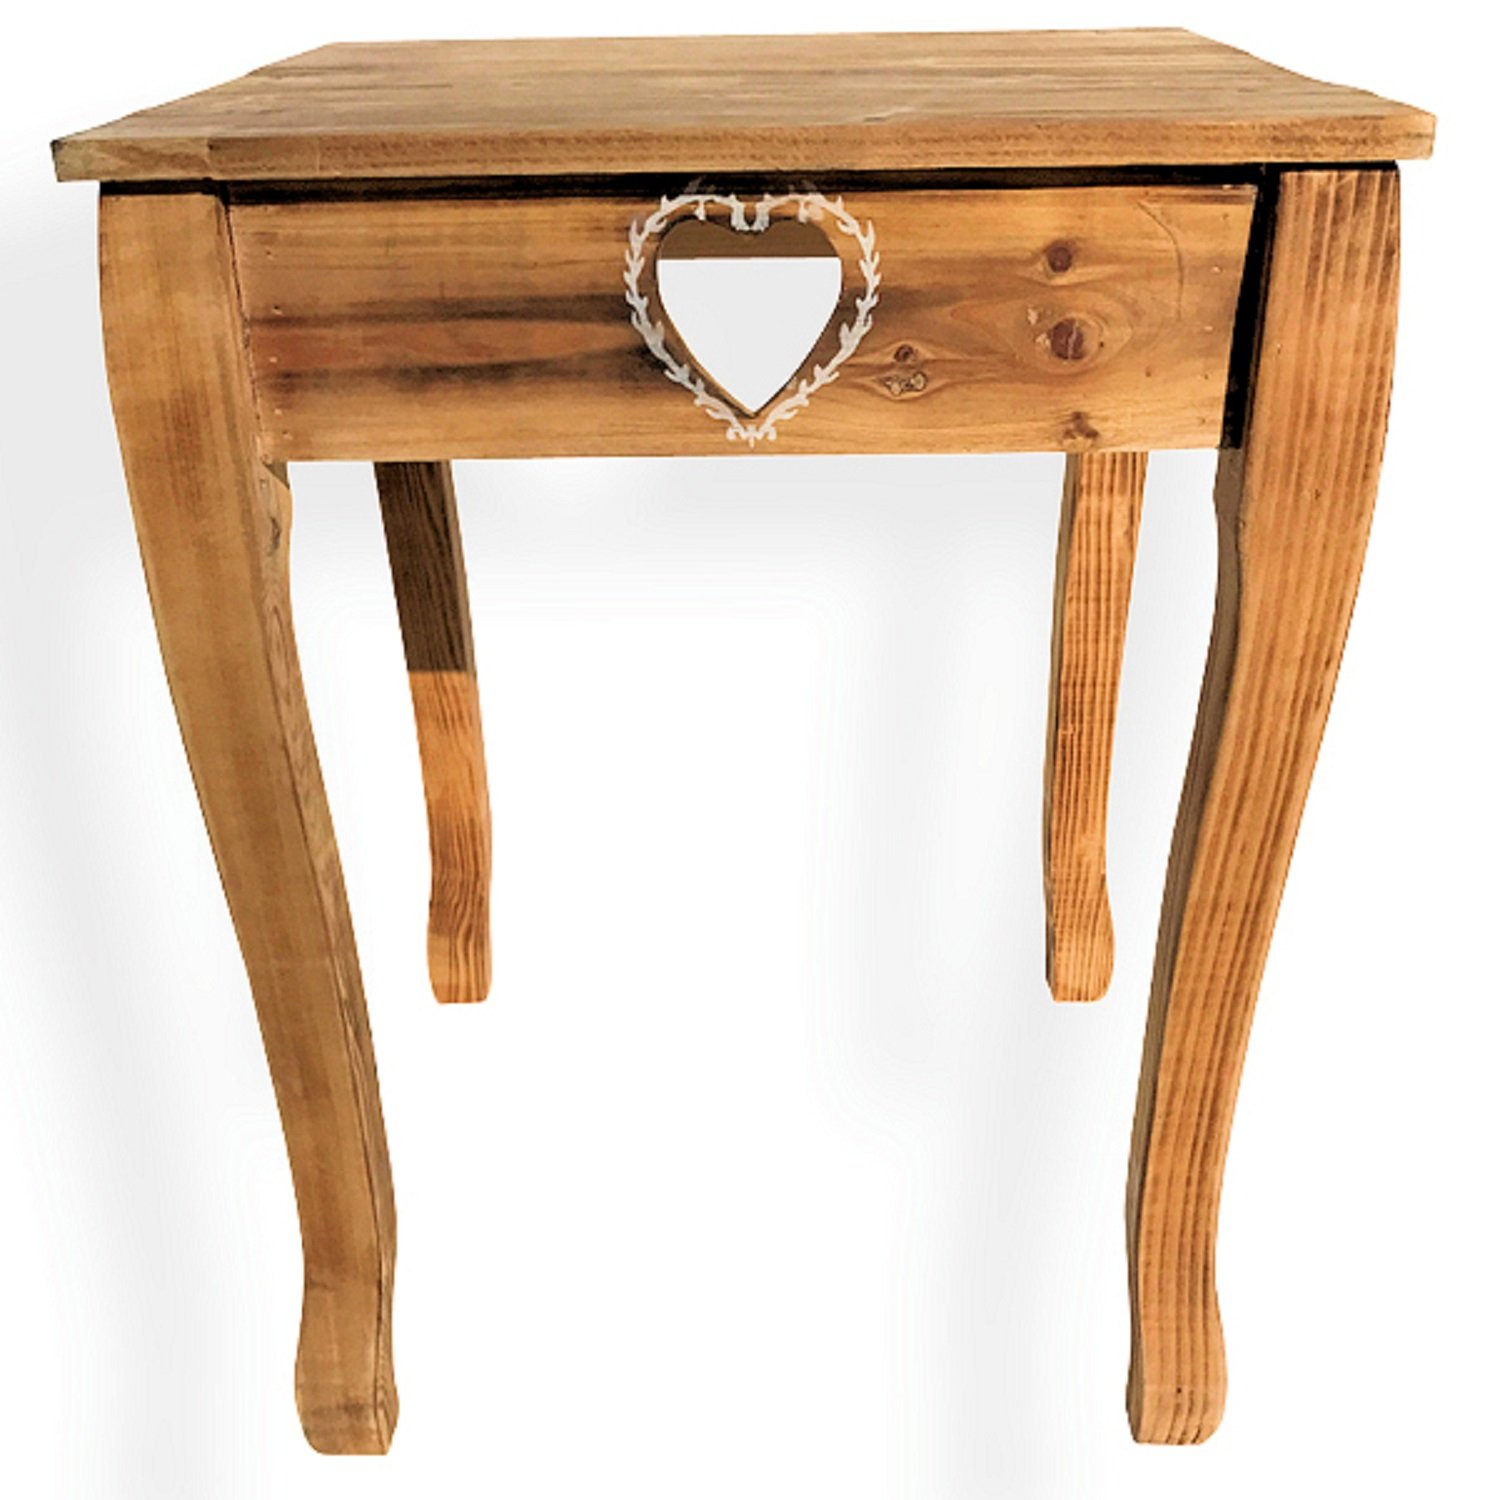 Whole House Worlds The Farmhouse Country Style Table, Side, Accent, or Occasional, Cut Out Hearts, Handcrafted of Sustainable Wood, Natural Color, Rustic White Accents, 22 Inches High, By